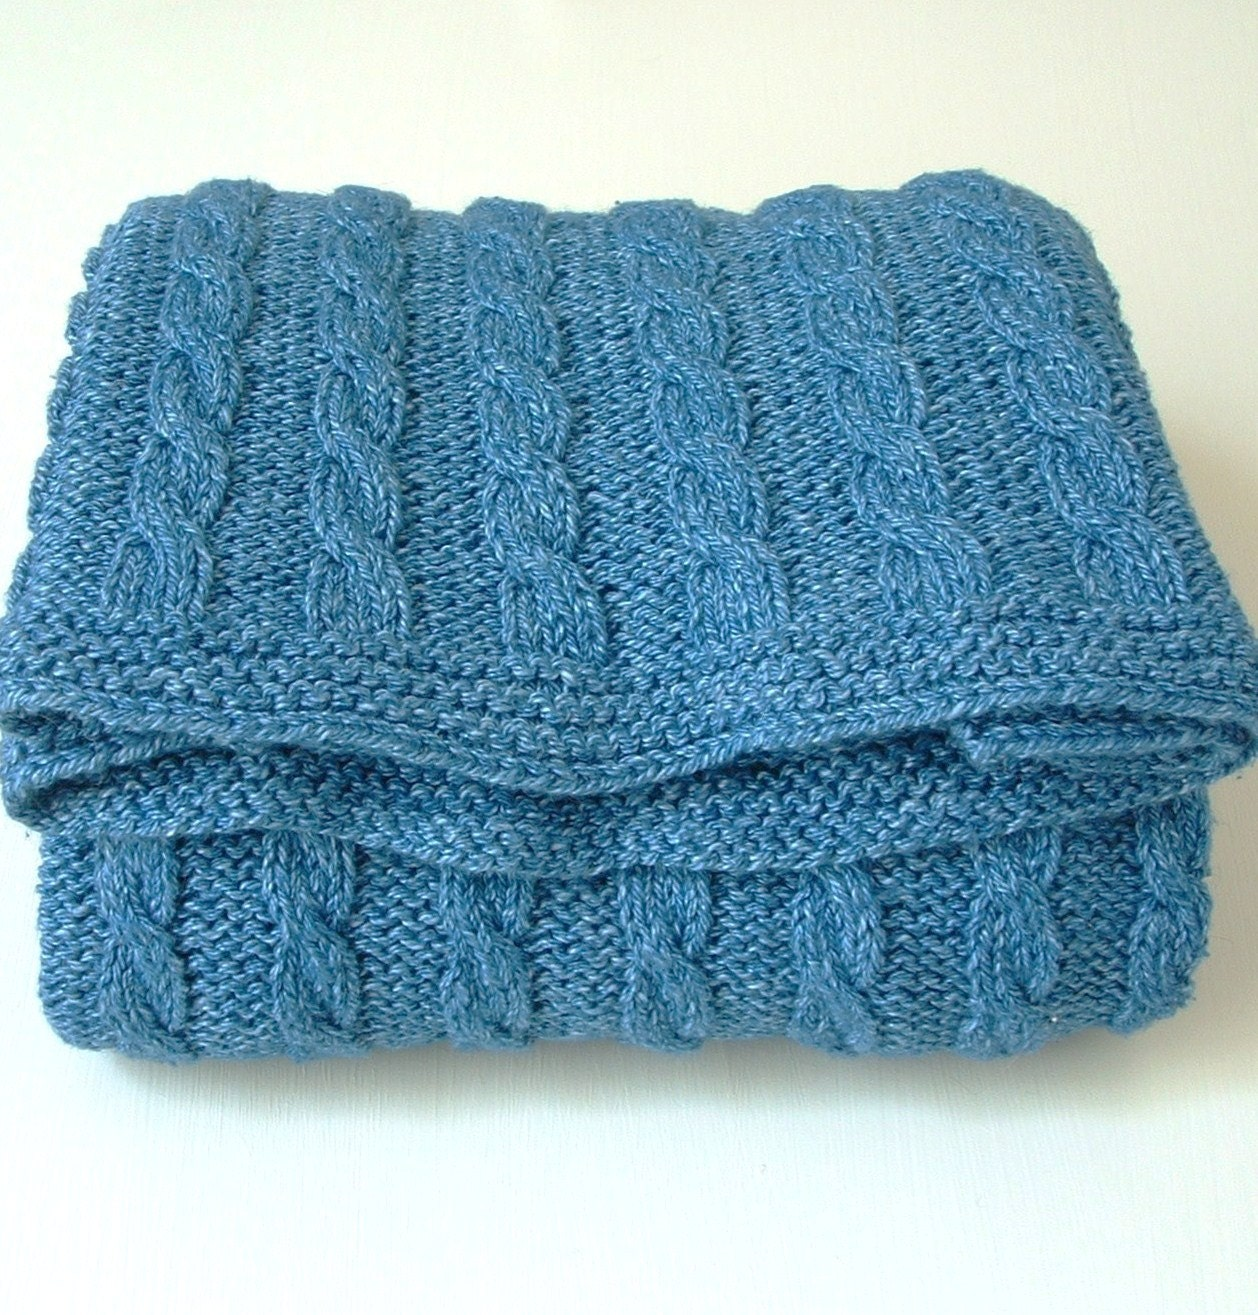 Cable Knit Throw Pattern : KNITTING PATTERNS baby blanket classic cable blanket